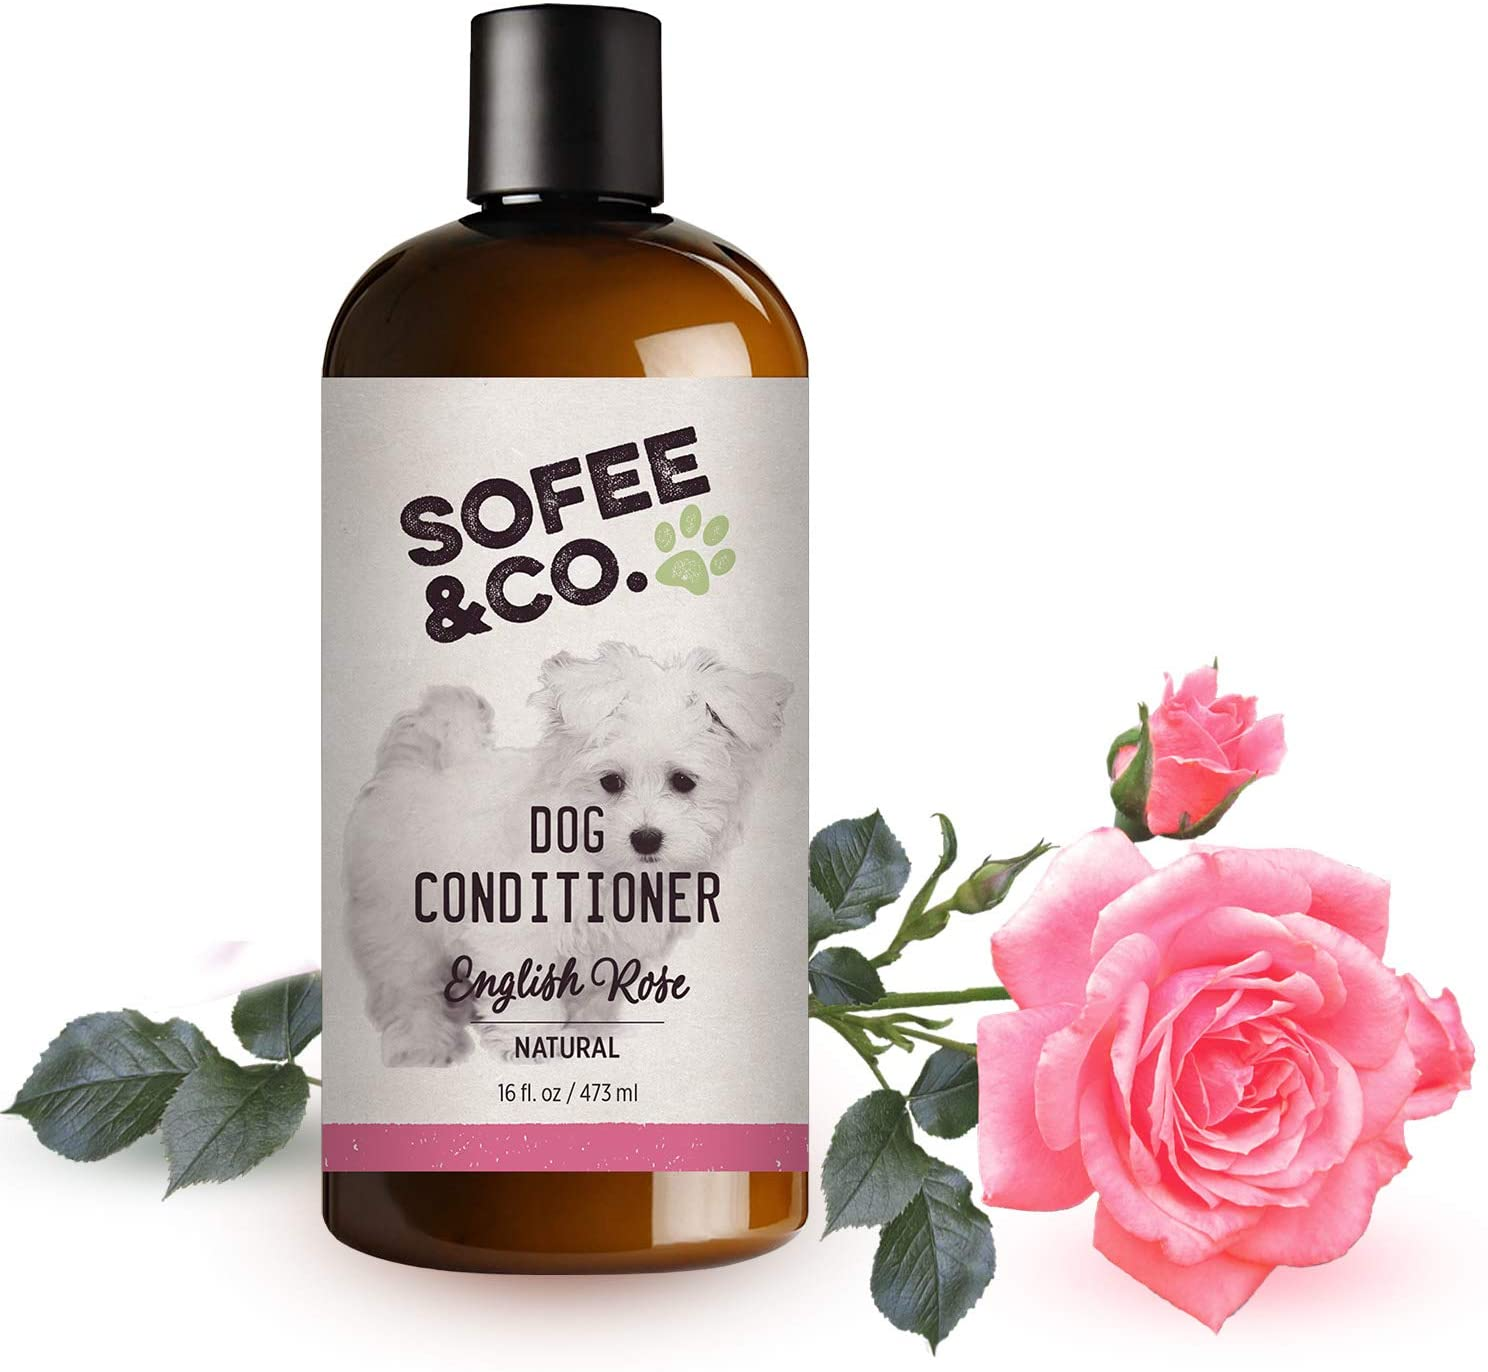 Sofee & Co. Natural Dog Puppy Conditioner - Moisturize Detangle Deodorize Condition Calm Soothe Soften Normal Dry Itchy Allergy Sensitive Skin. Prevent Mattes. 16 oz